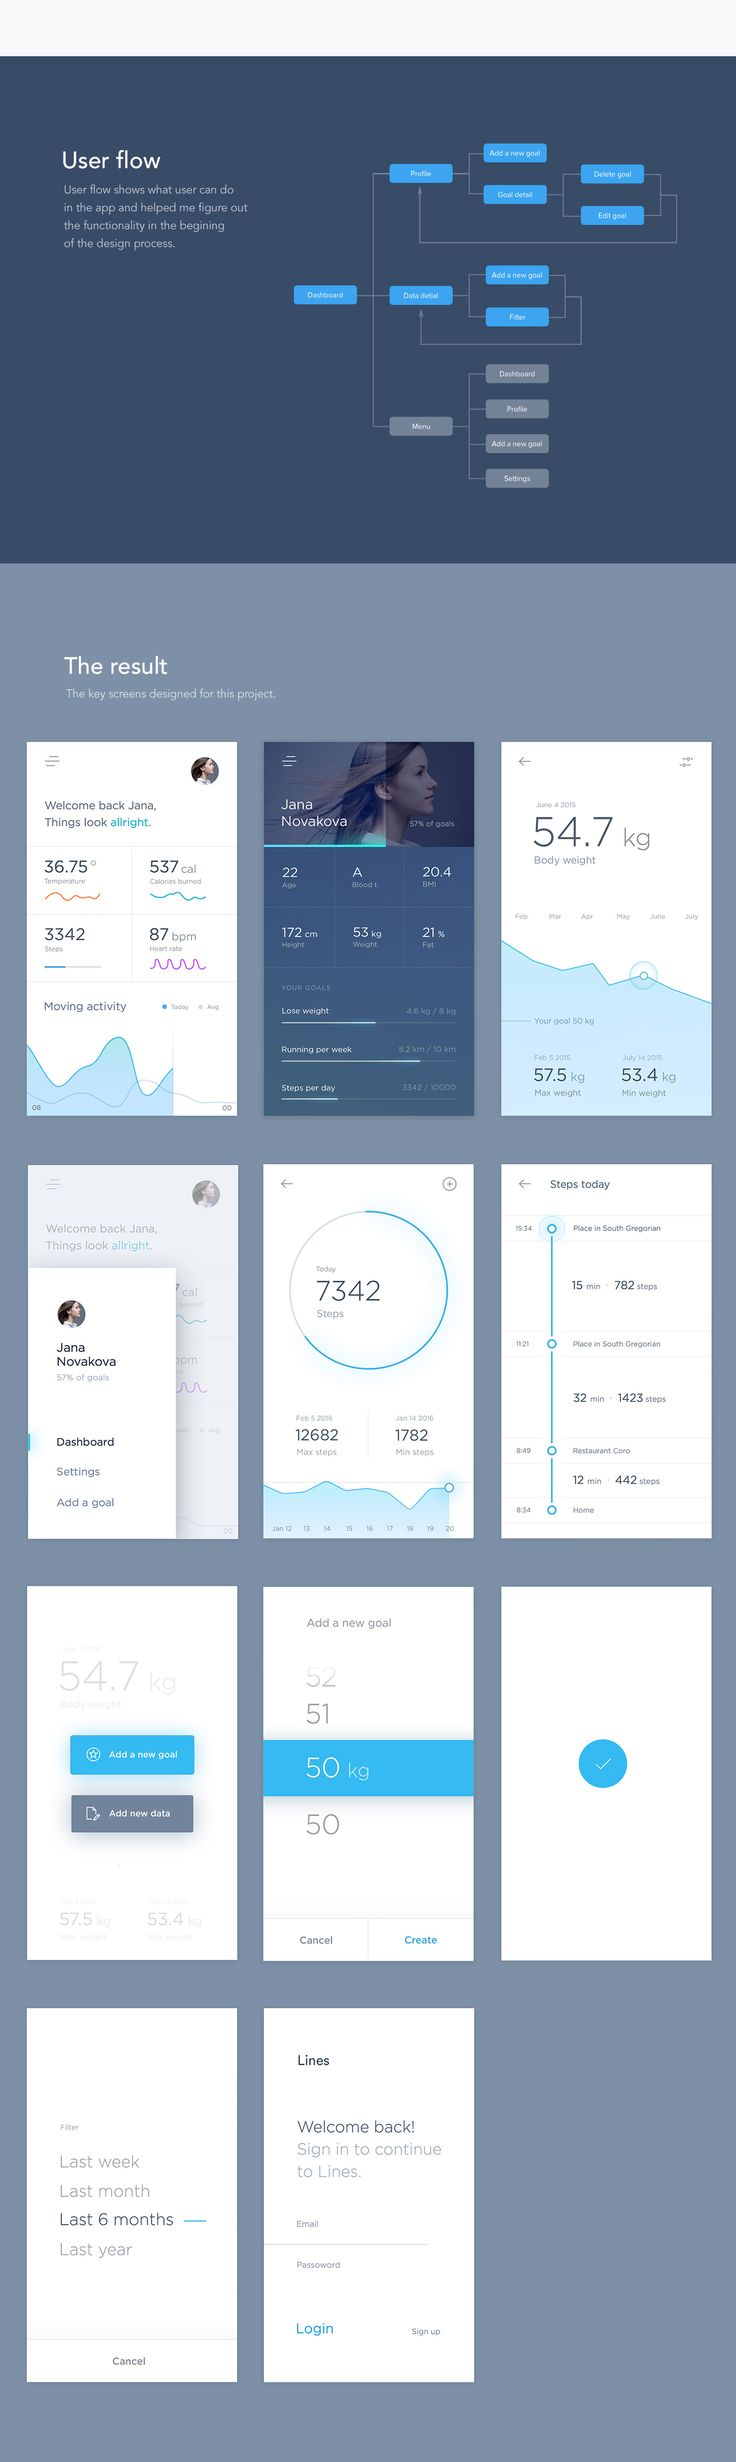 Lines Activity Tracker App Design